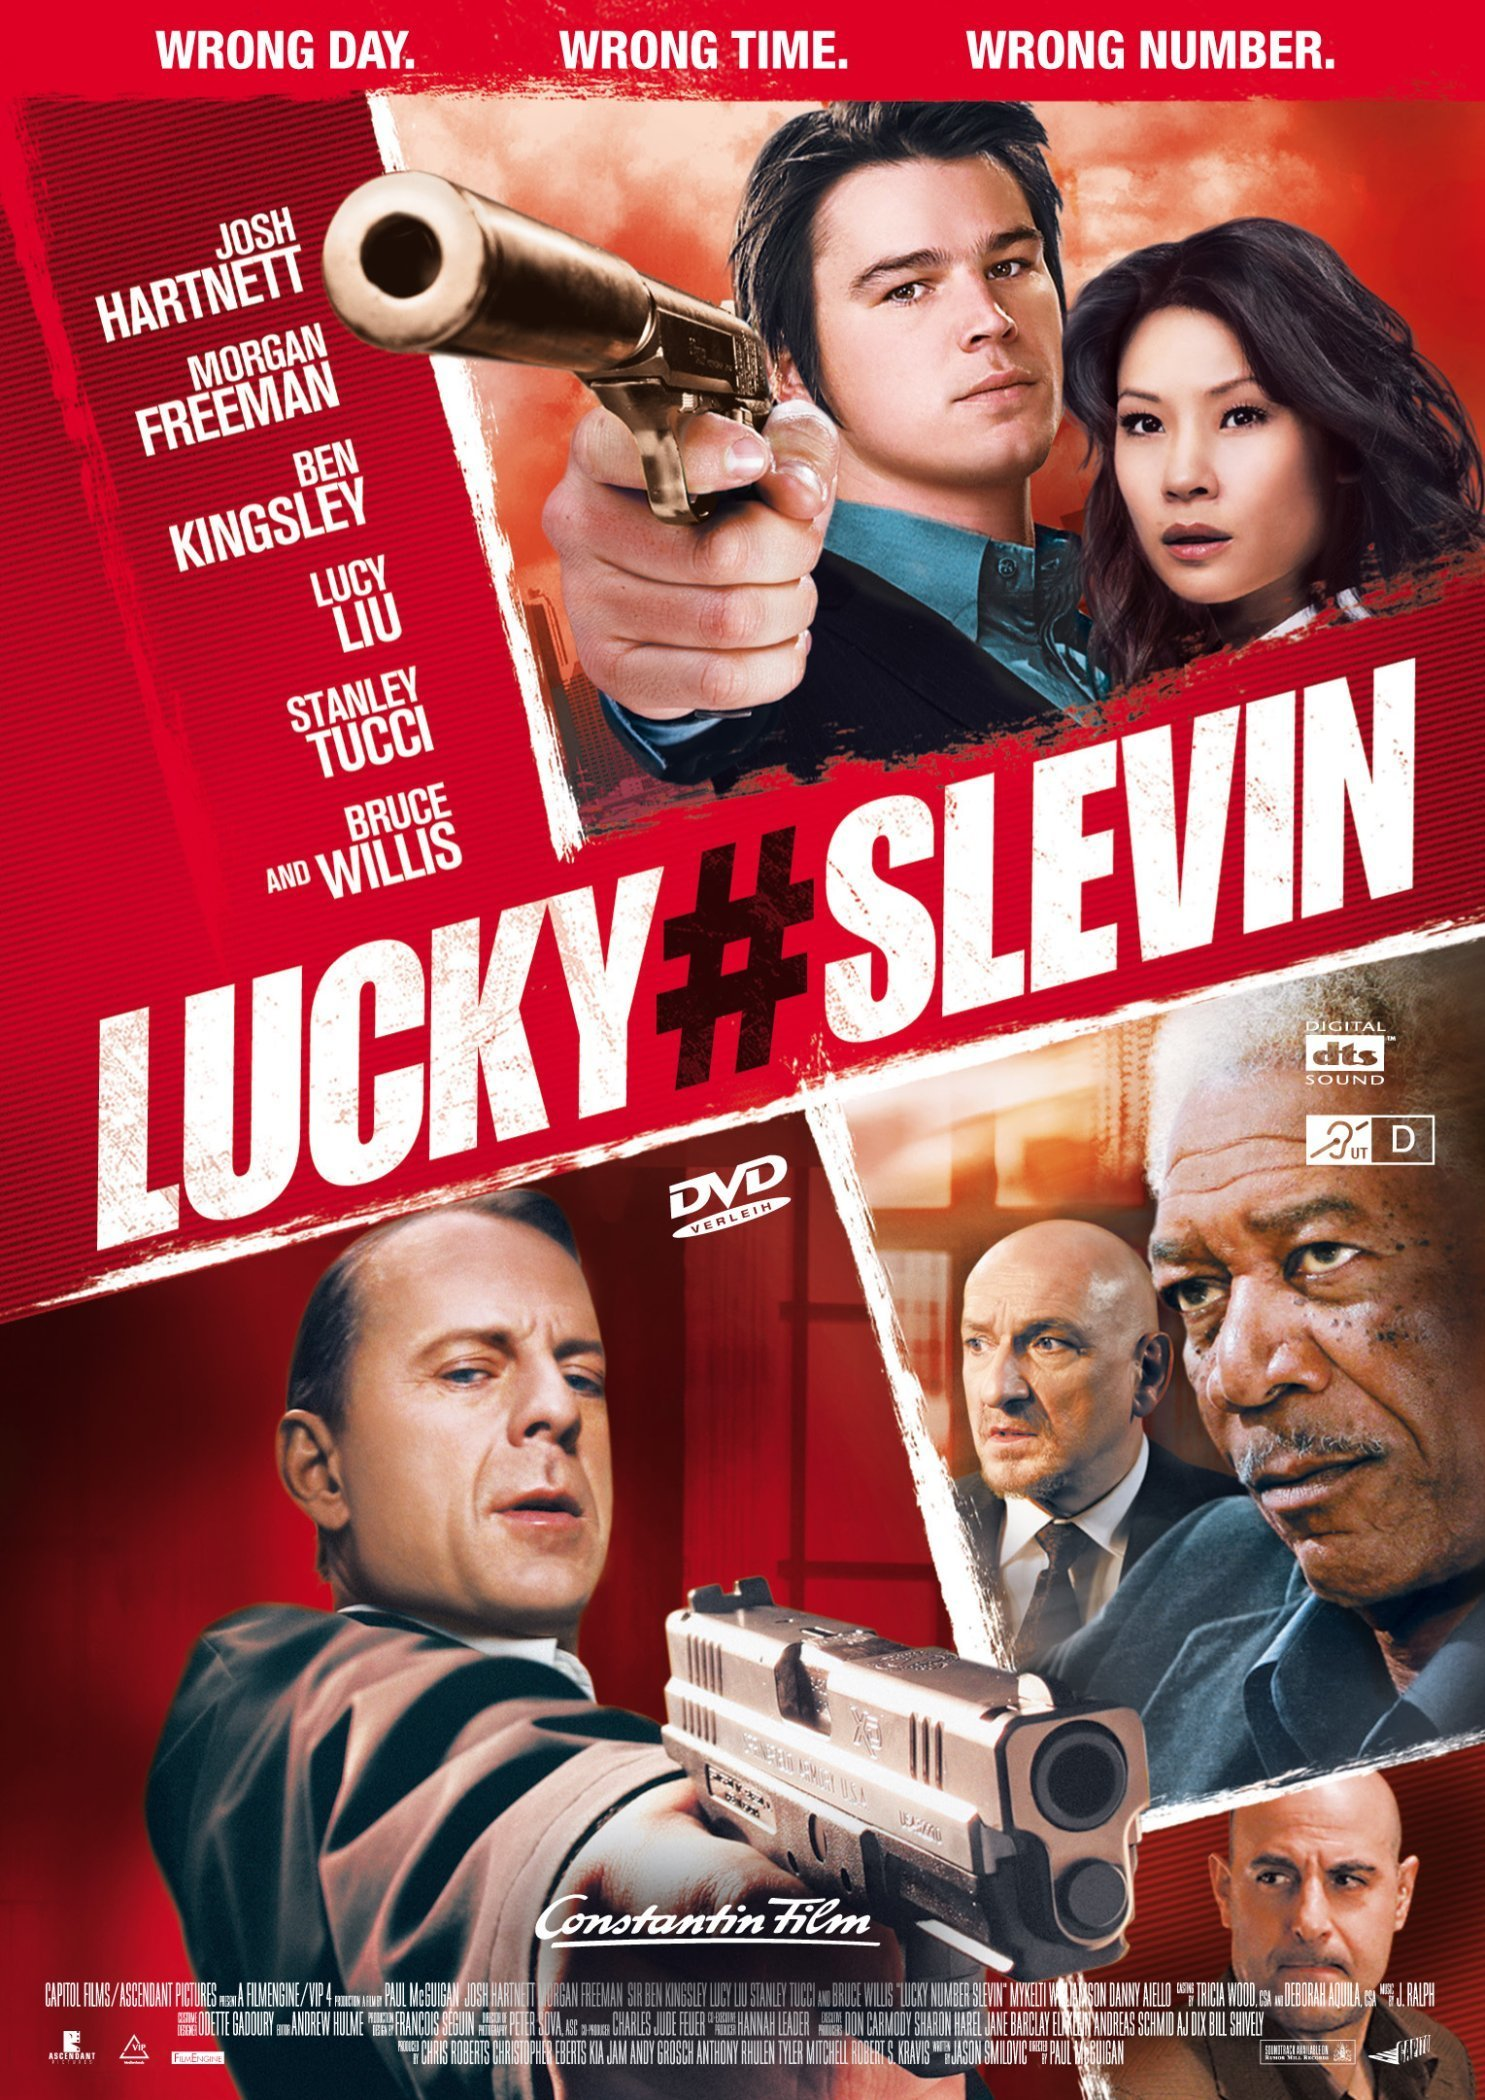 """Lucky # Slevin"""